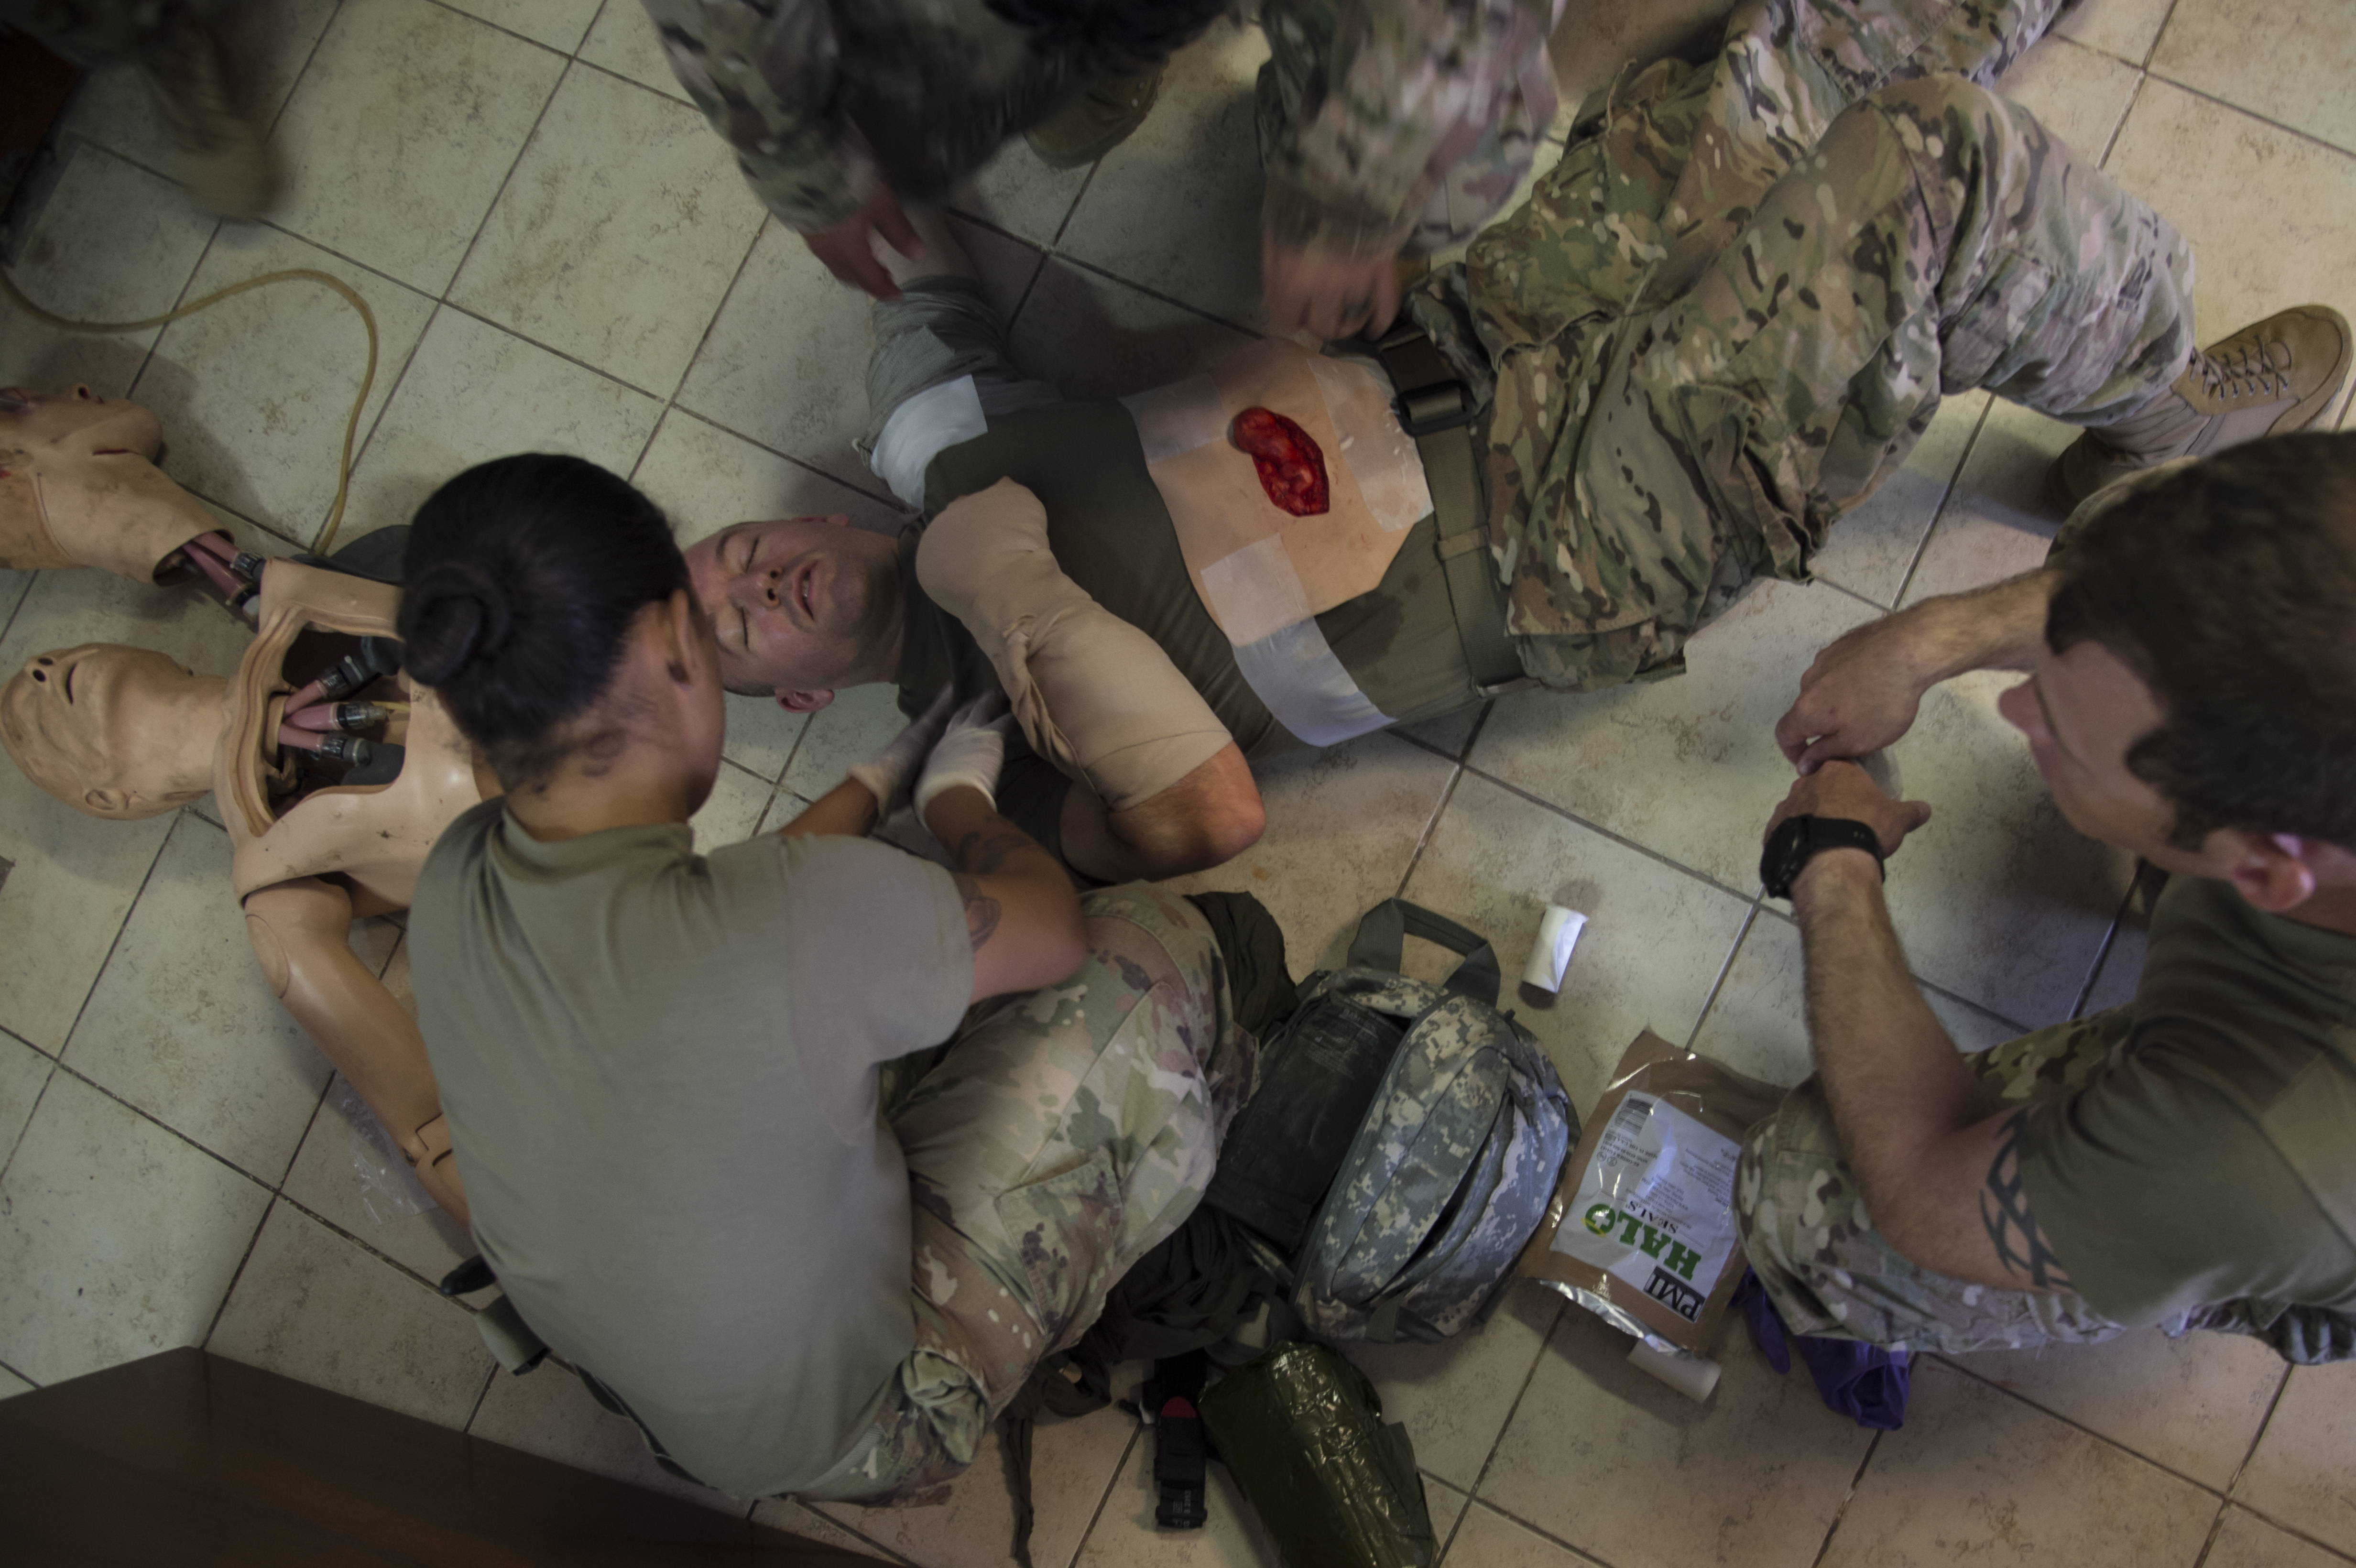 U.S. Army Sgt. Marina Ovalles, Combined Joint Task Force-Horn of Africa supply sergeant, treats multiple simulated wounds during the practical application assessment portion of the test to certify in the combat lifesaver course held on Camp Lemonnier, Djibouti, Sept. 15, 2017. The U.S. Army Combat Lifesaver Course is intended to bridge first aid training – self and buddy care — and the medical training given to combat medics. (U.S. Air National Guard photo by Tech. Sgt. Joe Harwood)